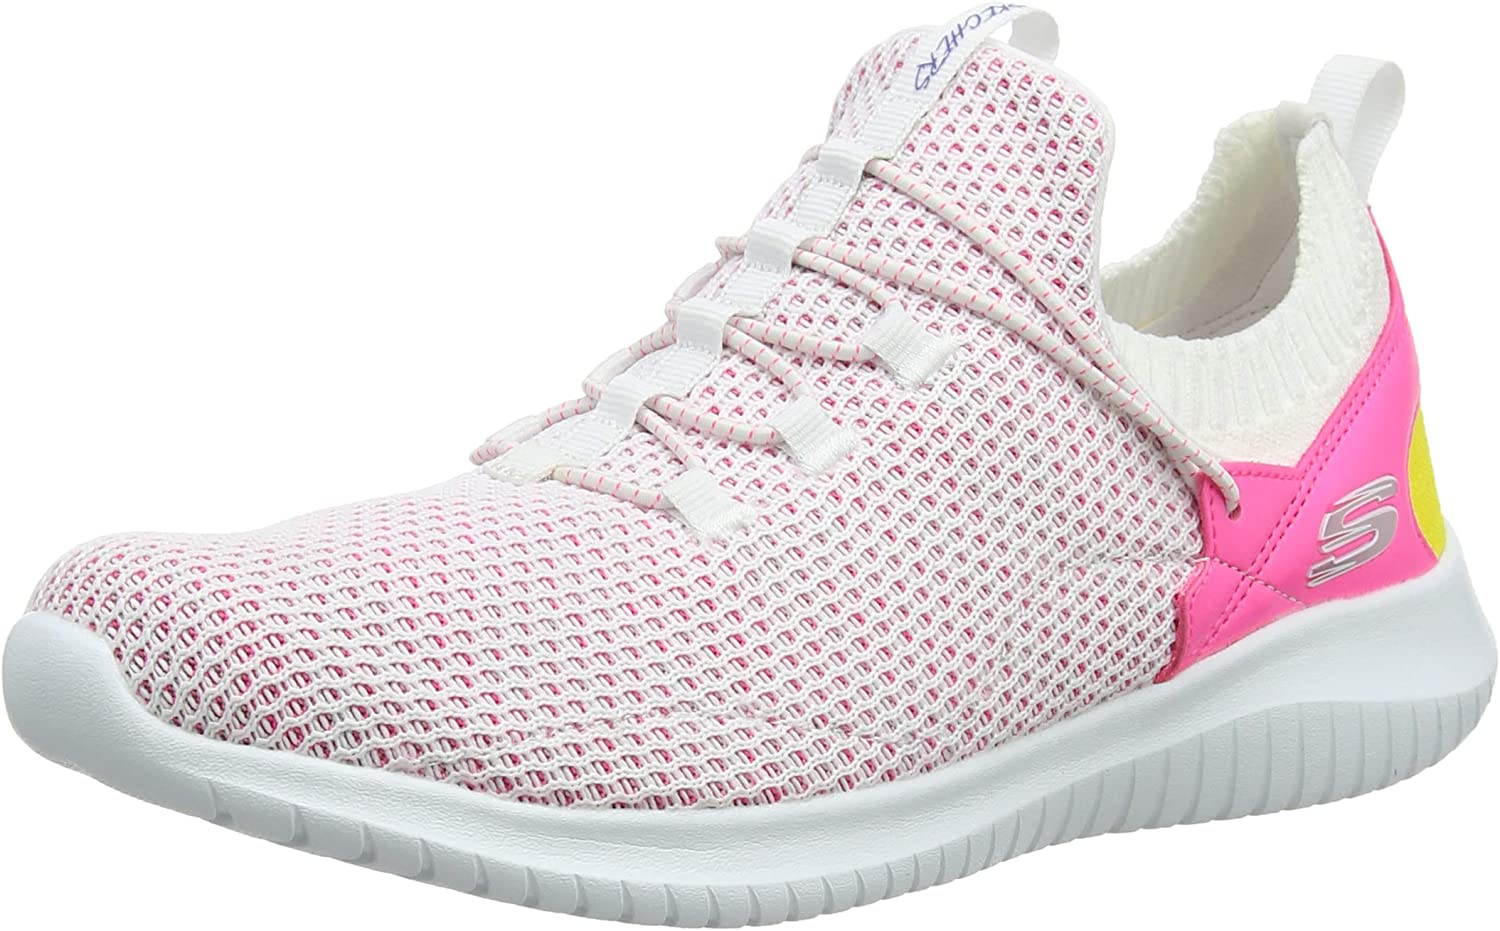 Skechers Ultra Flex-More Tranquility, Zapatillas para Mujer